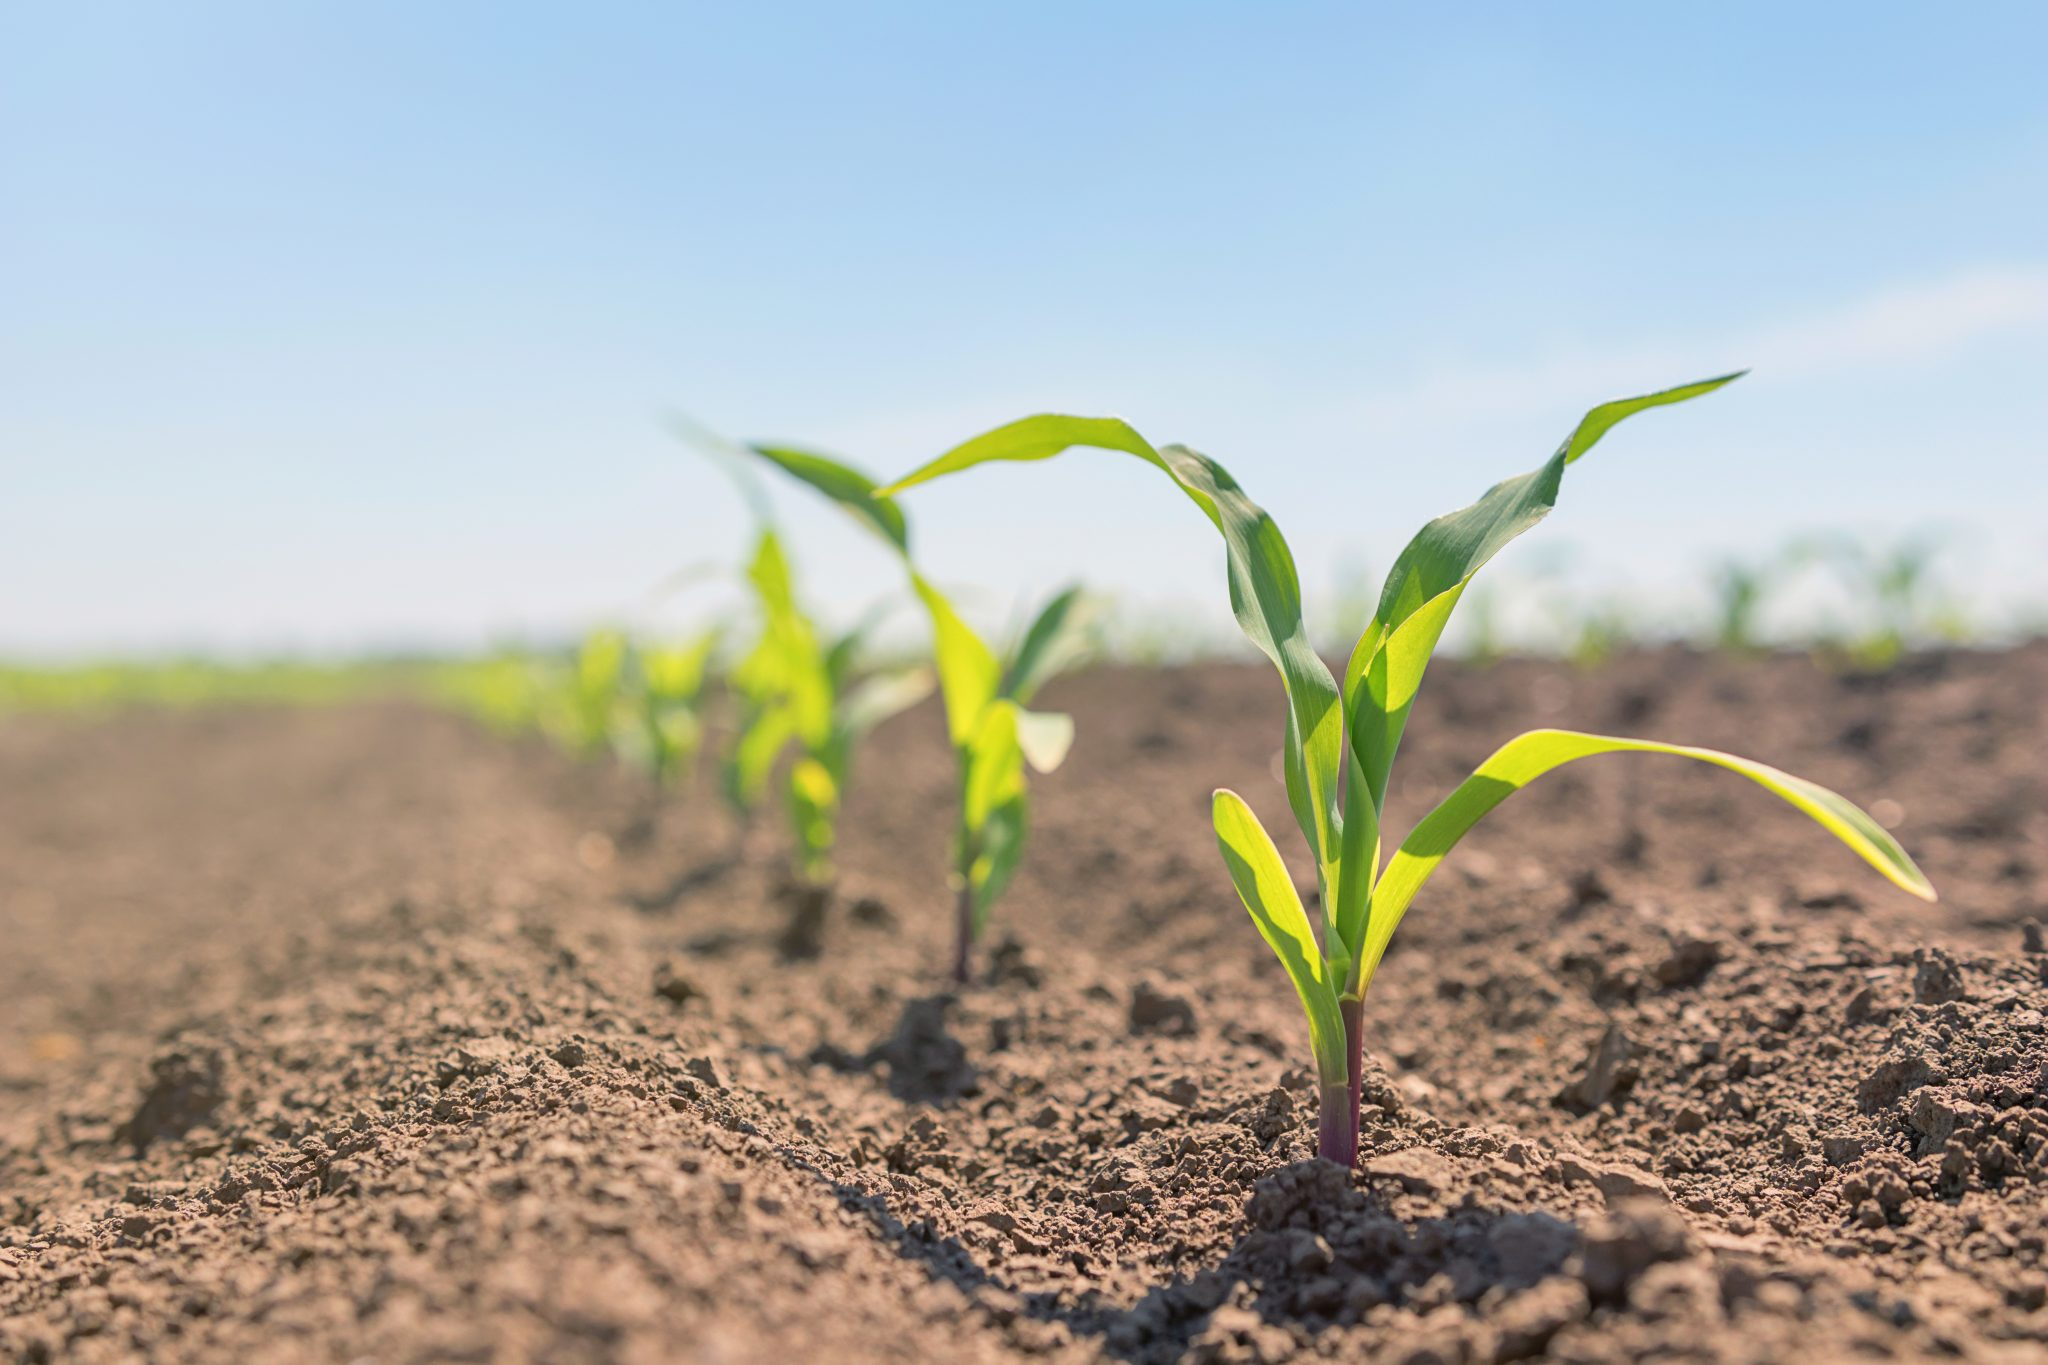 Young corn plants growing in a field